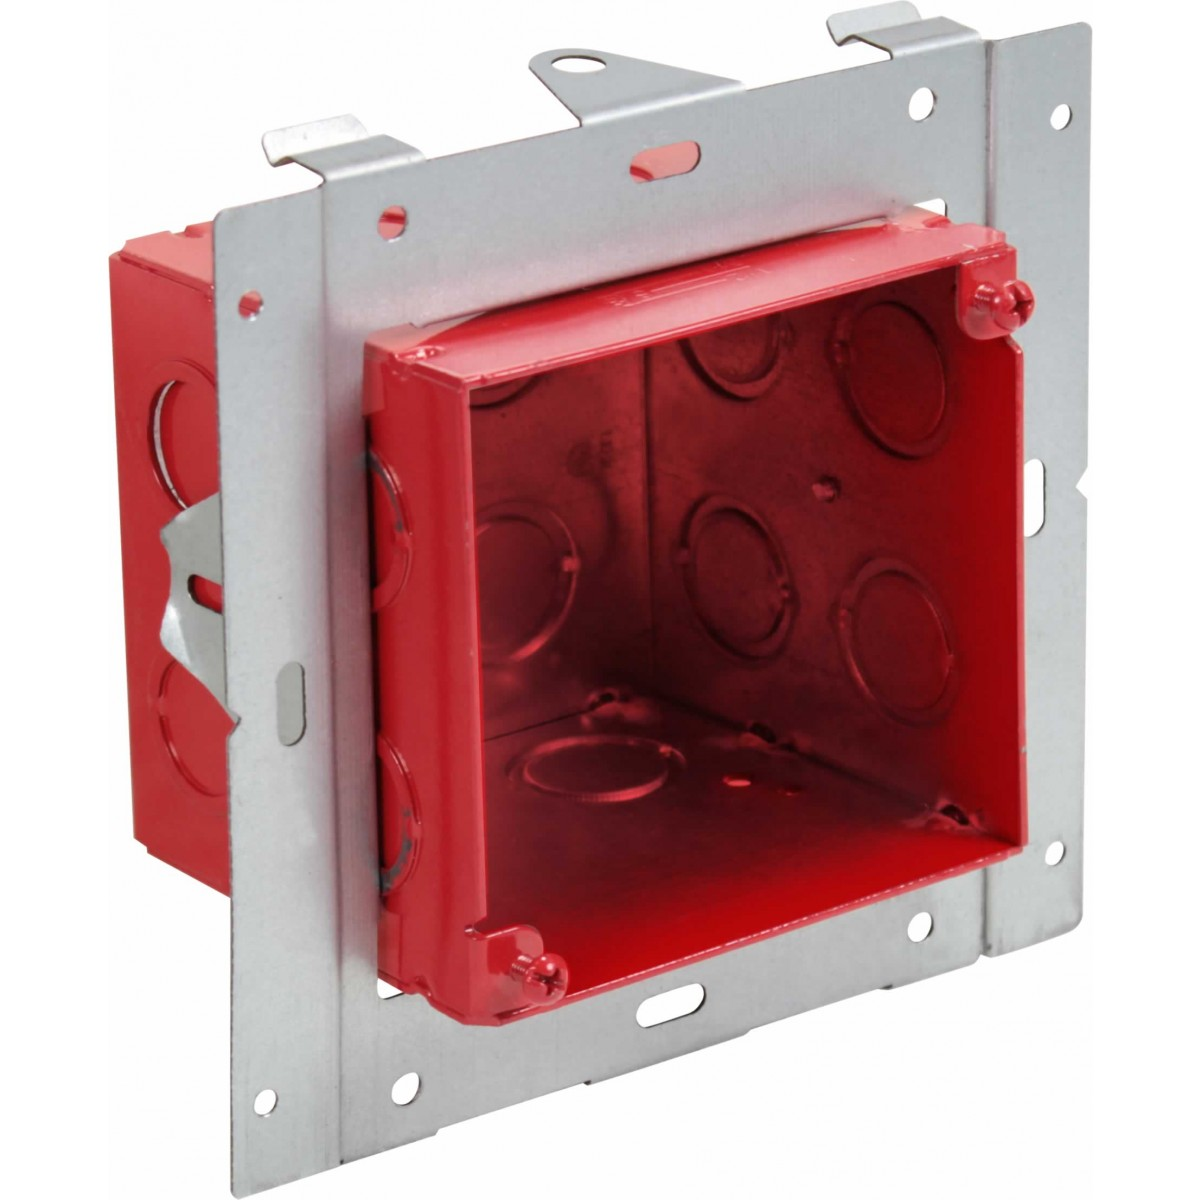 FA-UMAB - Fire Alarm Boxes - Electrical Junction Boxes - Steel Products